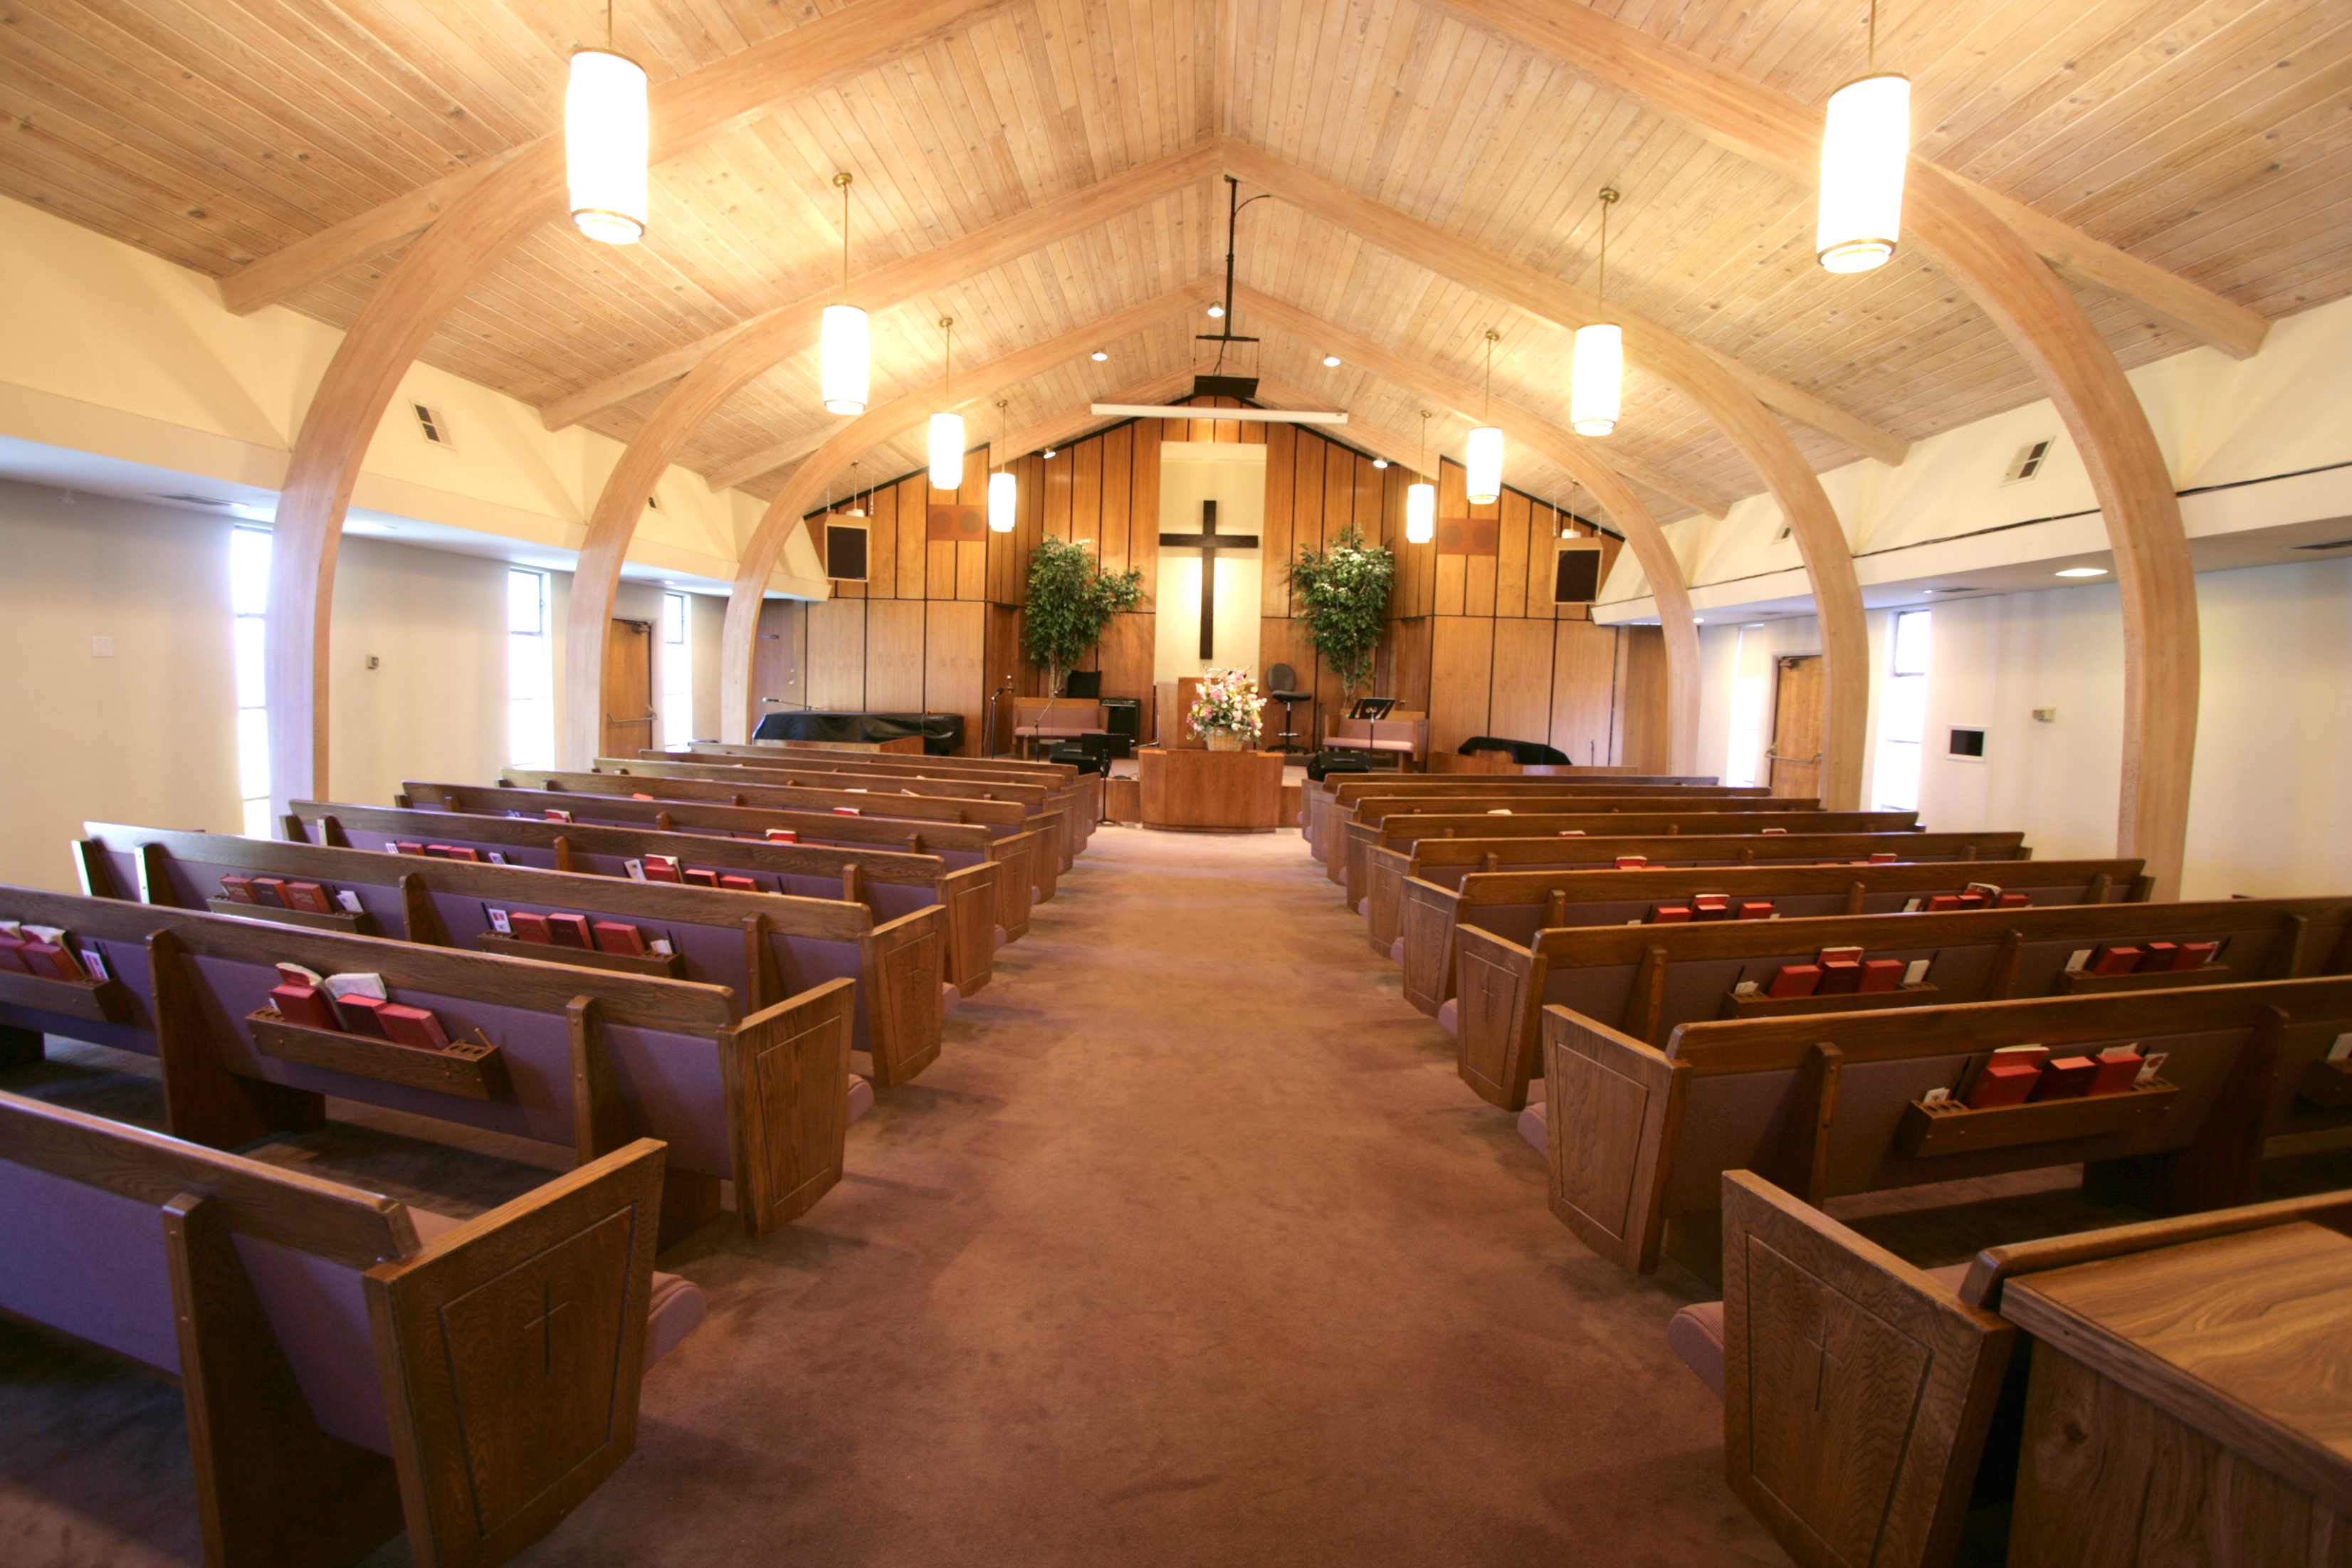 How to Get Grants for Small Churches | Bizfluent